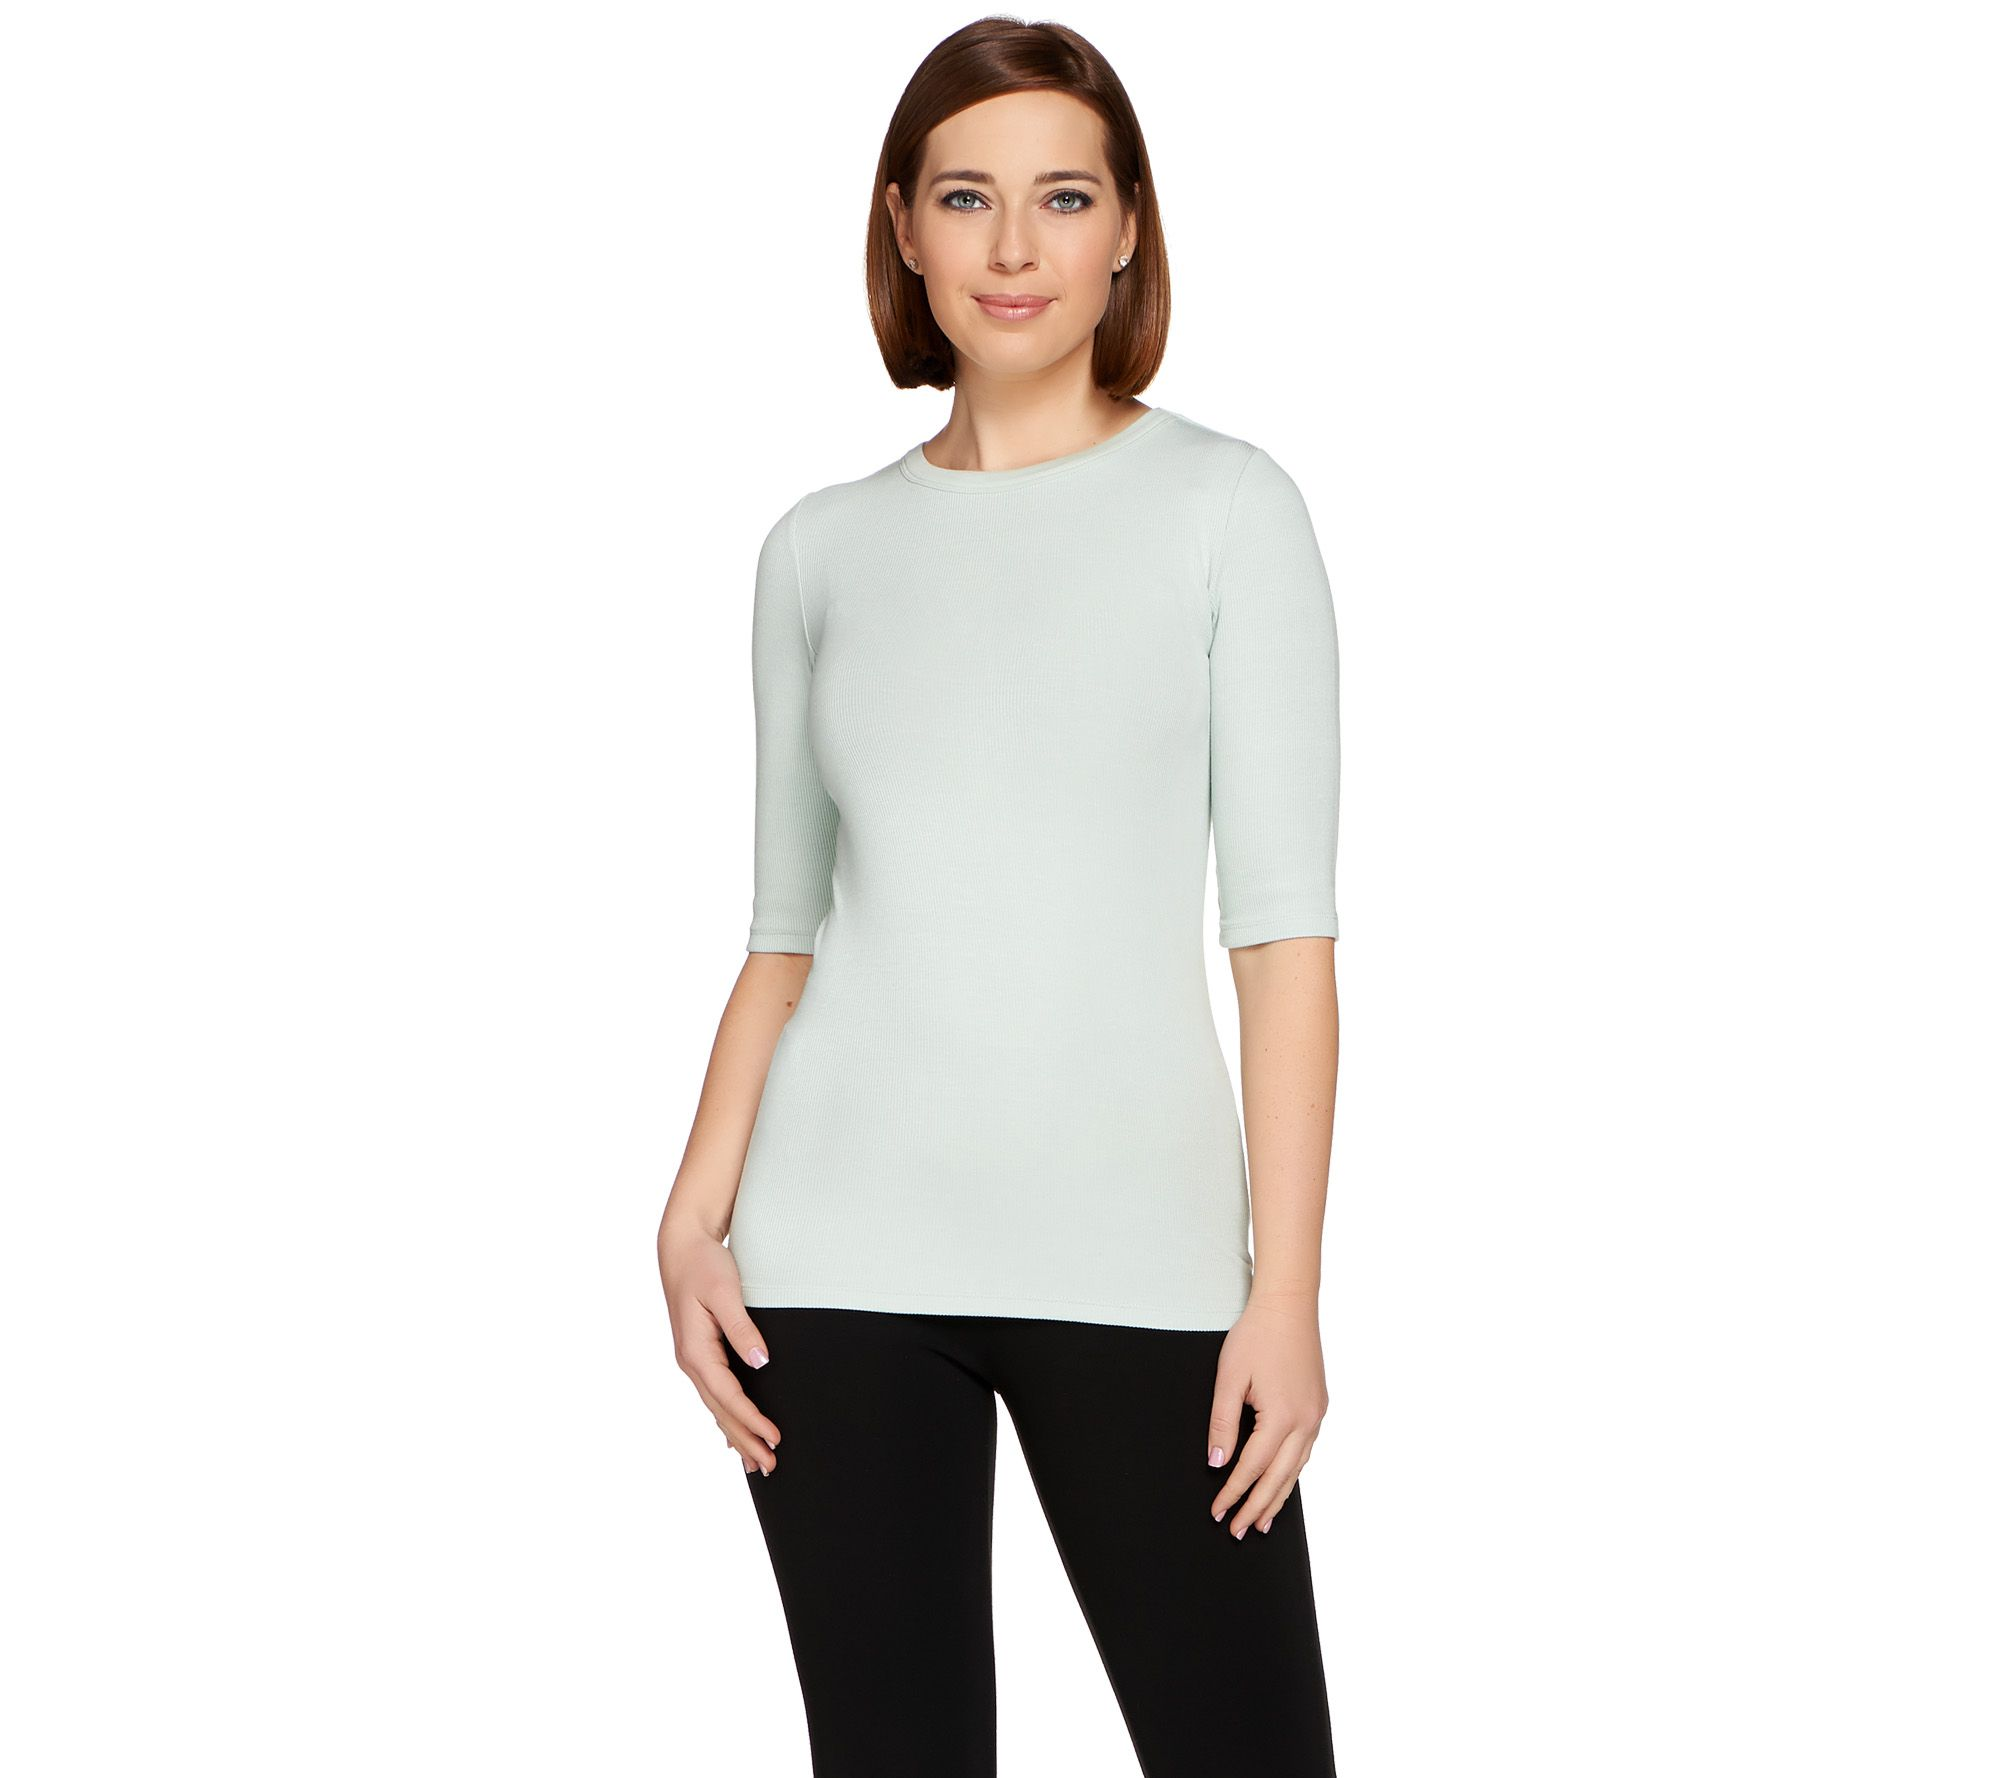 G.I.L.I. Ribbed Knit Elbow Sleeve Essentials T-shirt